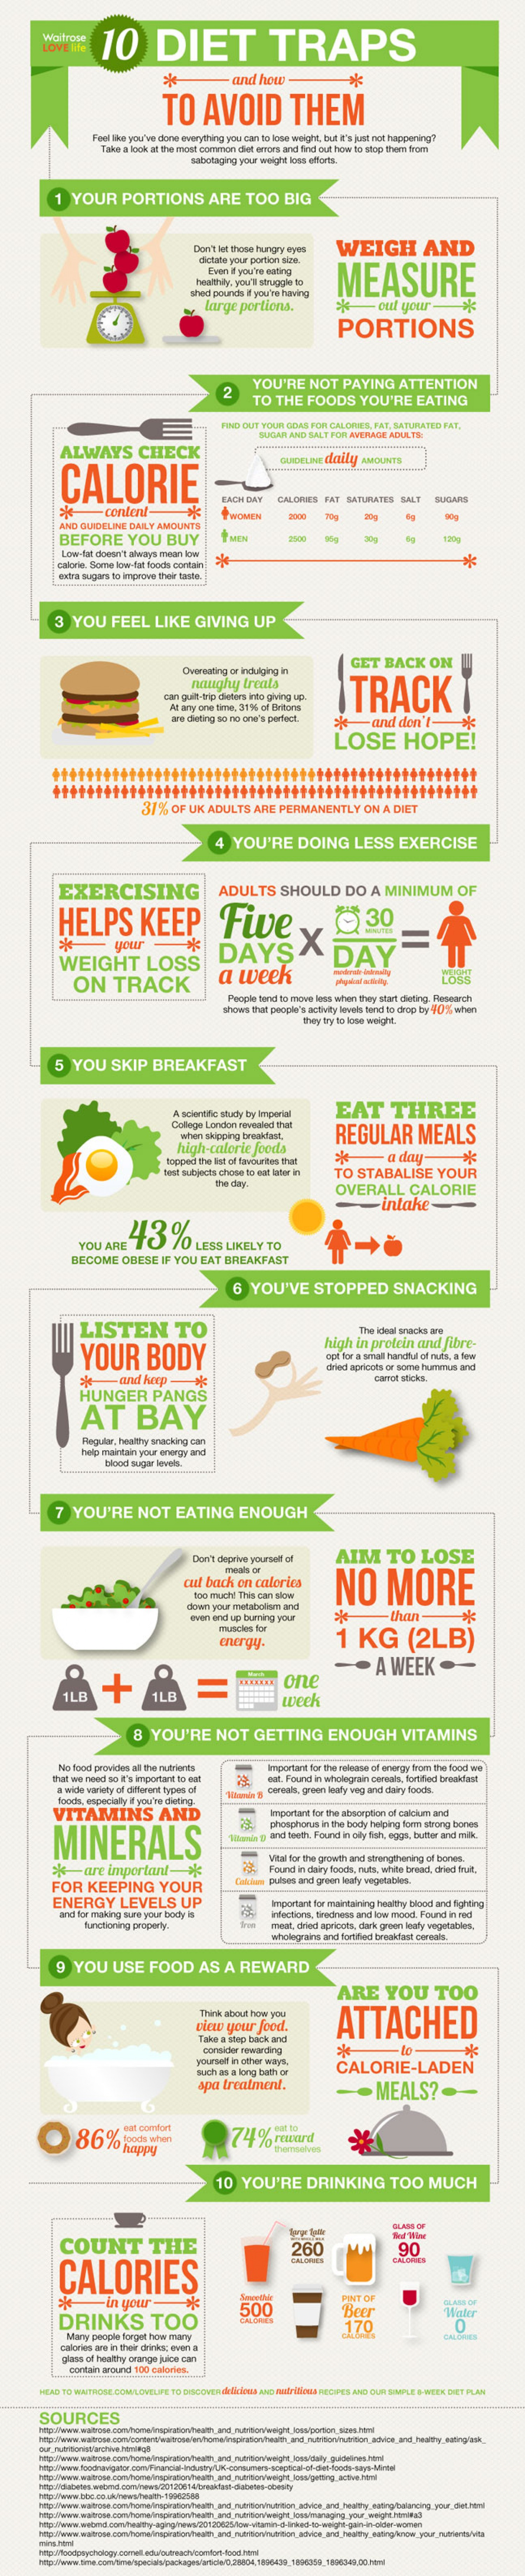 10 Diet Traps That Are Most Common - Infographic